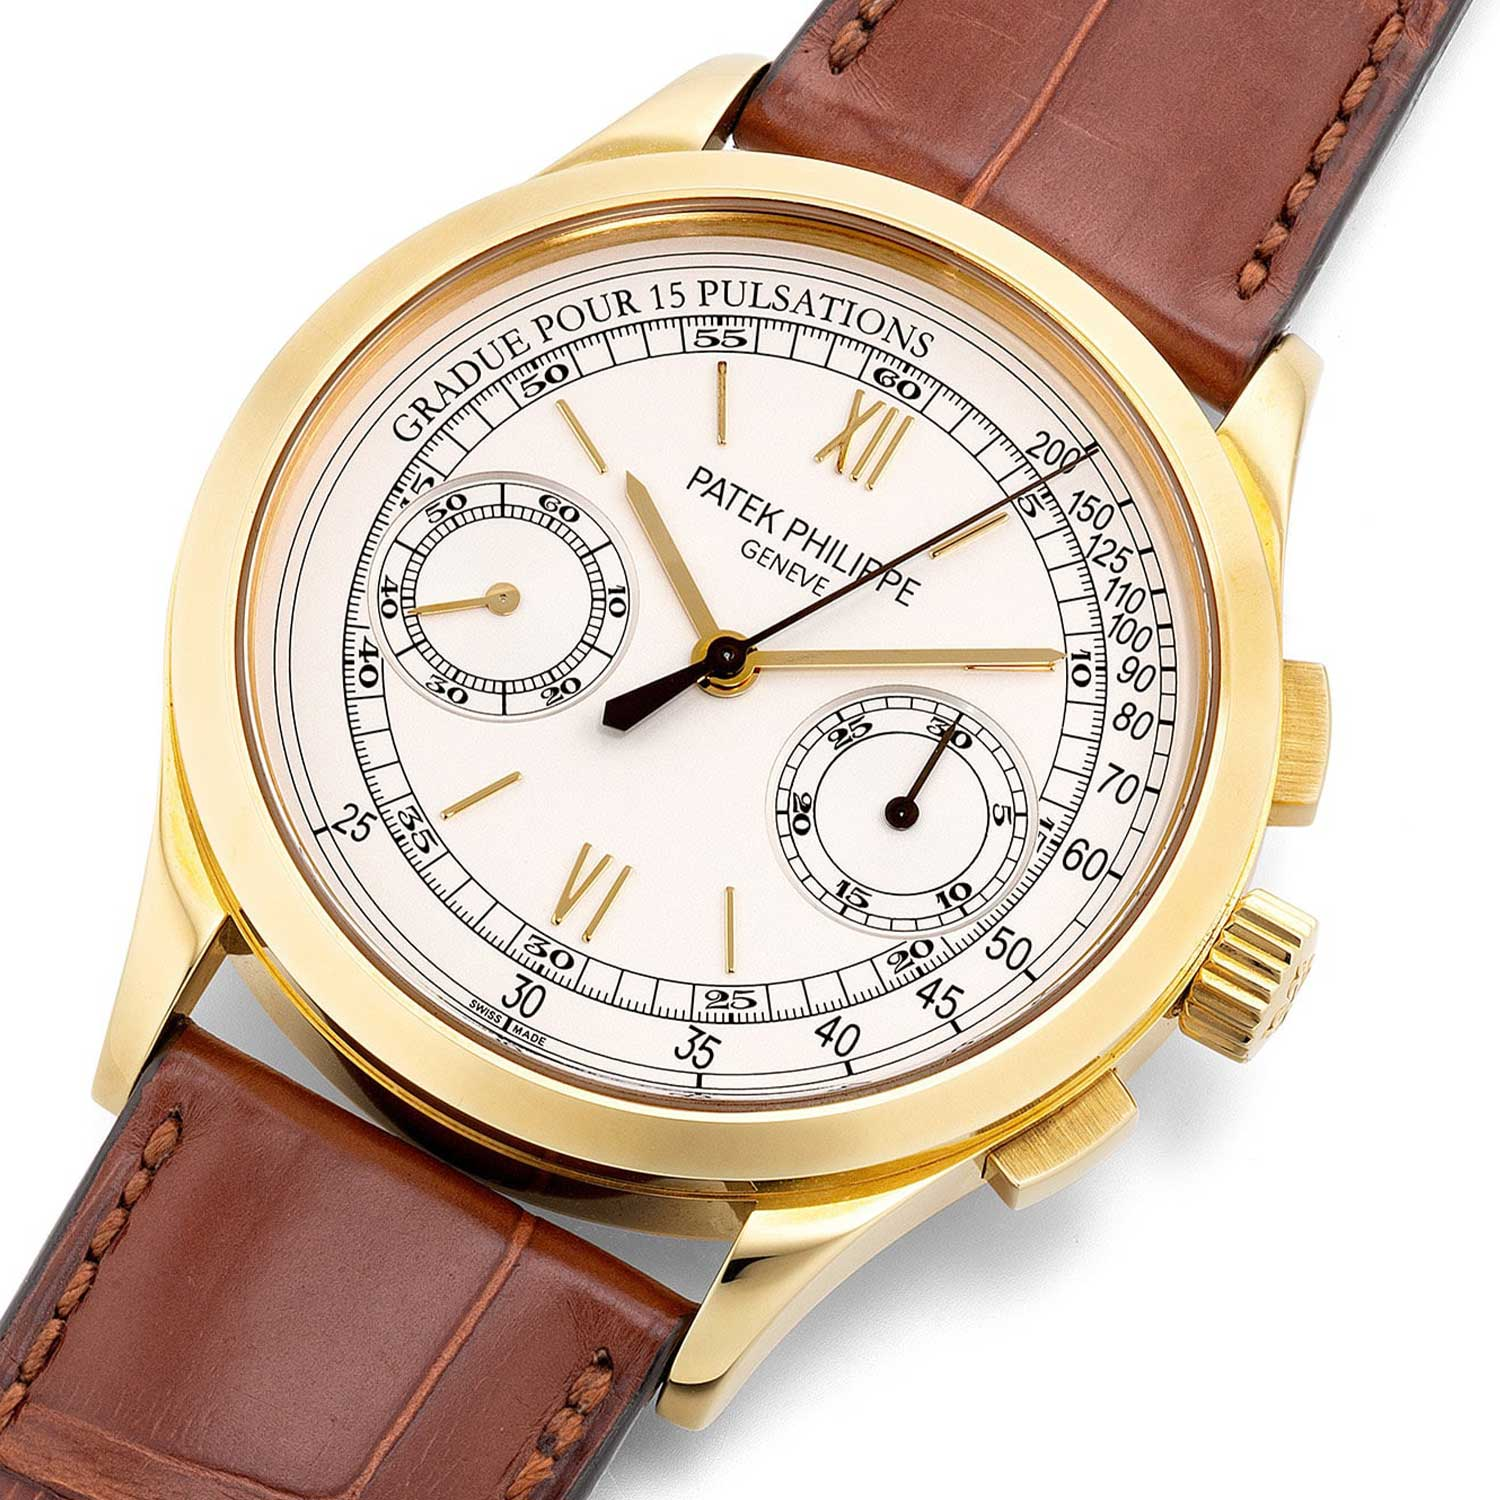 The 2010 Patek Philippe Ref. 5170J's dial is the only one in the reference to feature a combination of Roman Numerals and baton hour markers with a pulsation chronograph scale (Image: Phillips.com)